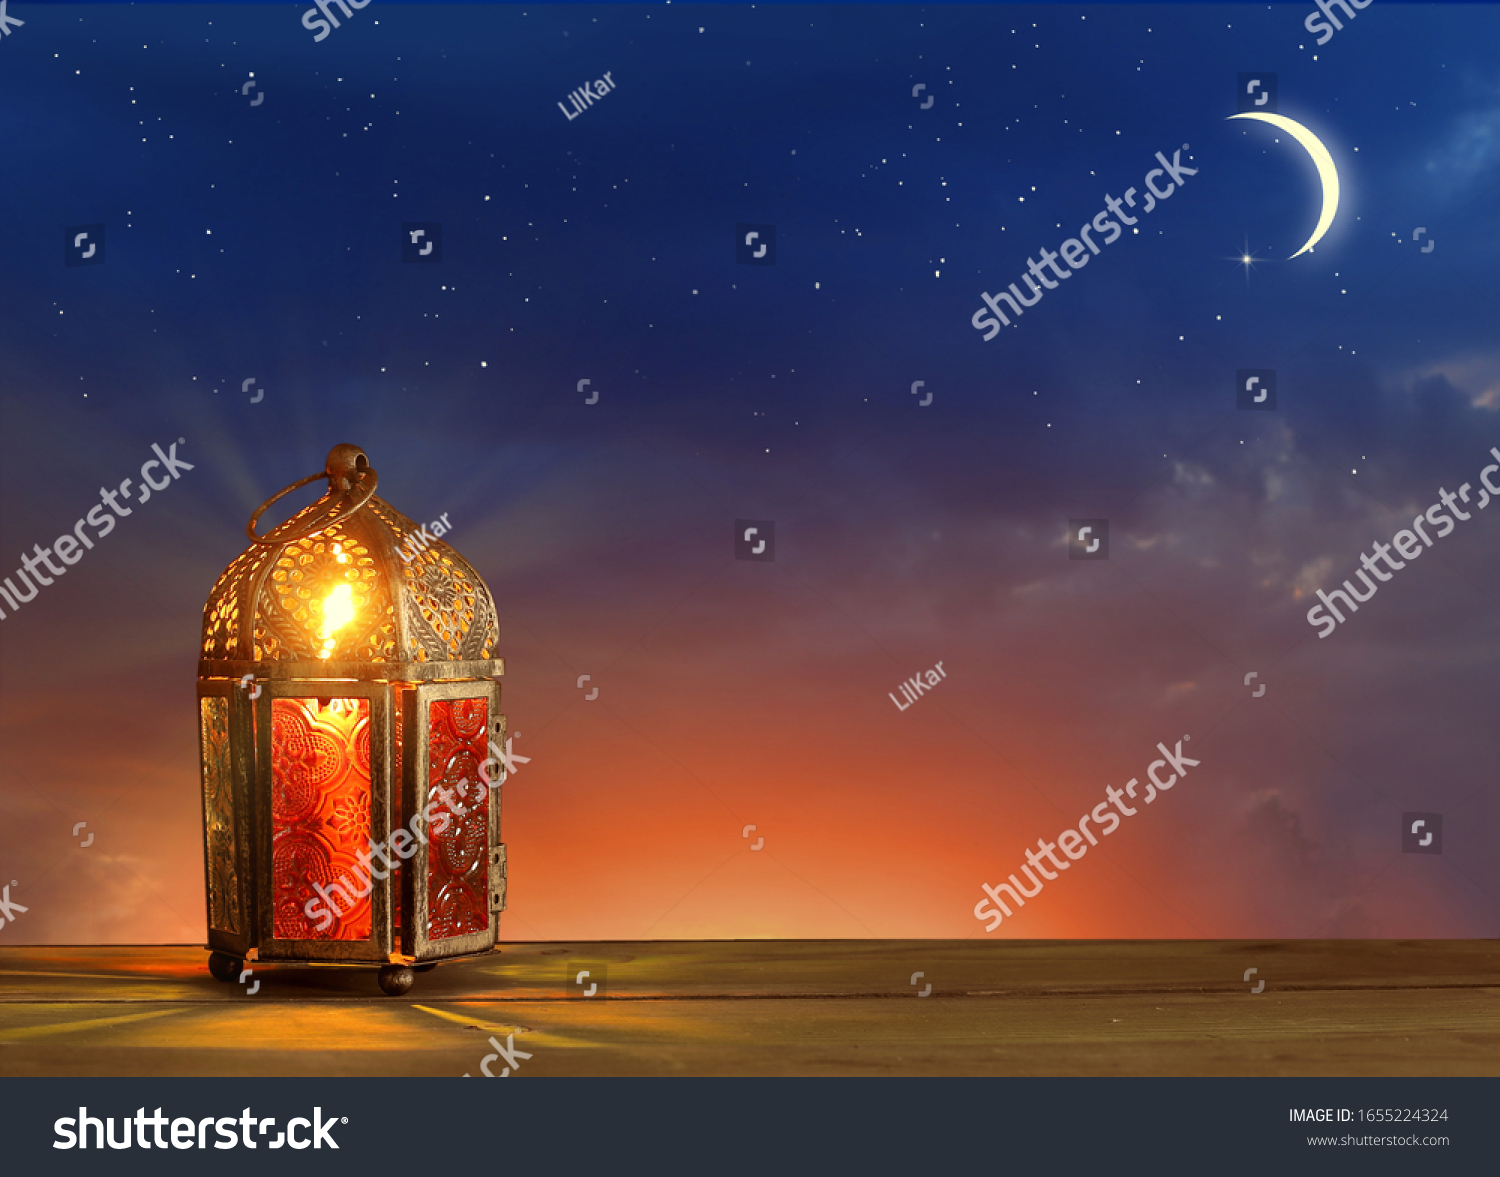 Islamic greeting Eid Mubarak cards for Muslim Holidays.Eid-Ul-Adha festival celebration.Arabic Ramadan Lantern on wooden table.Decoration lamp. Crescent moon and the stars.  #1655224324